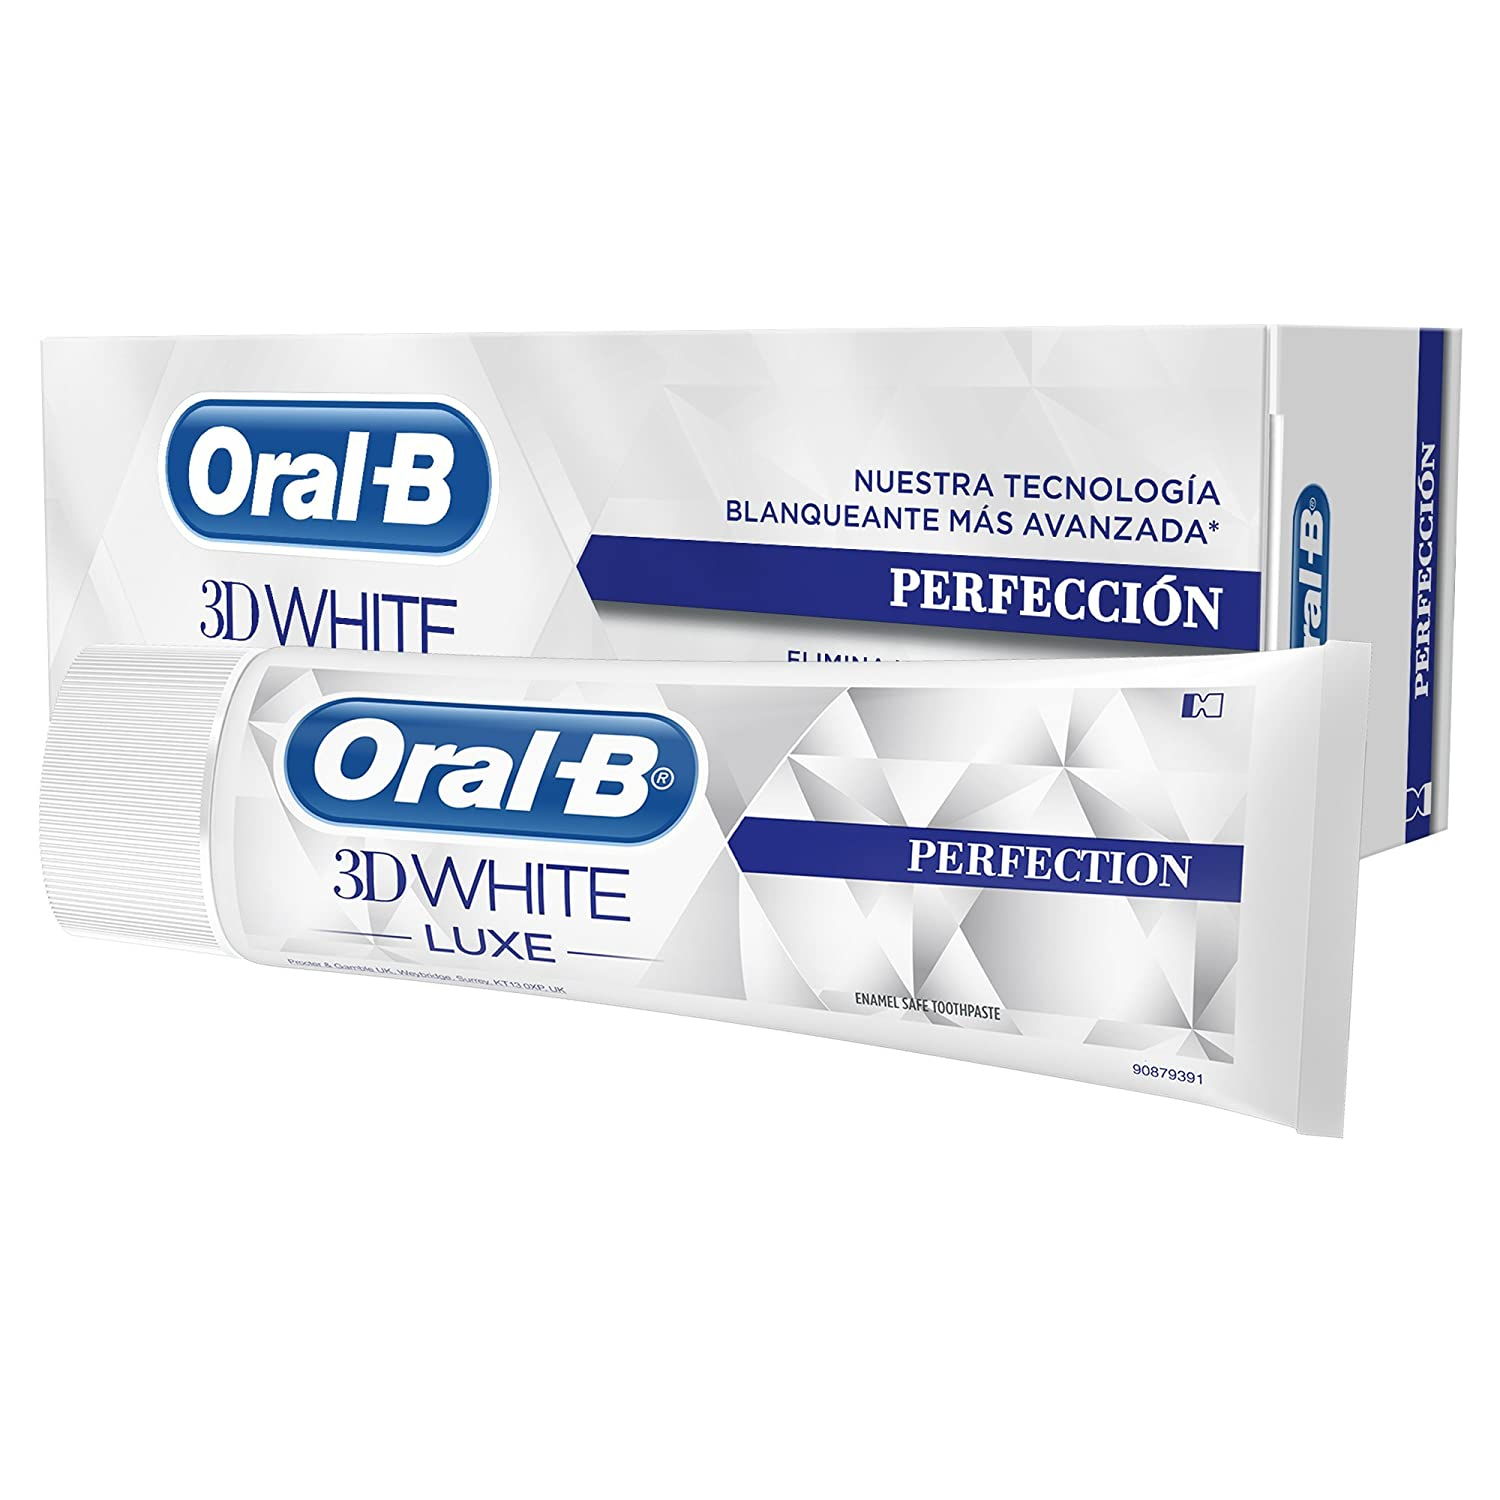 Oral-B 3D White Luxe Perfection Toothpaste, 75 ml (Packaging may vary)